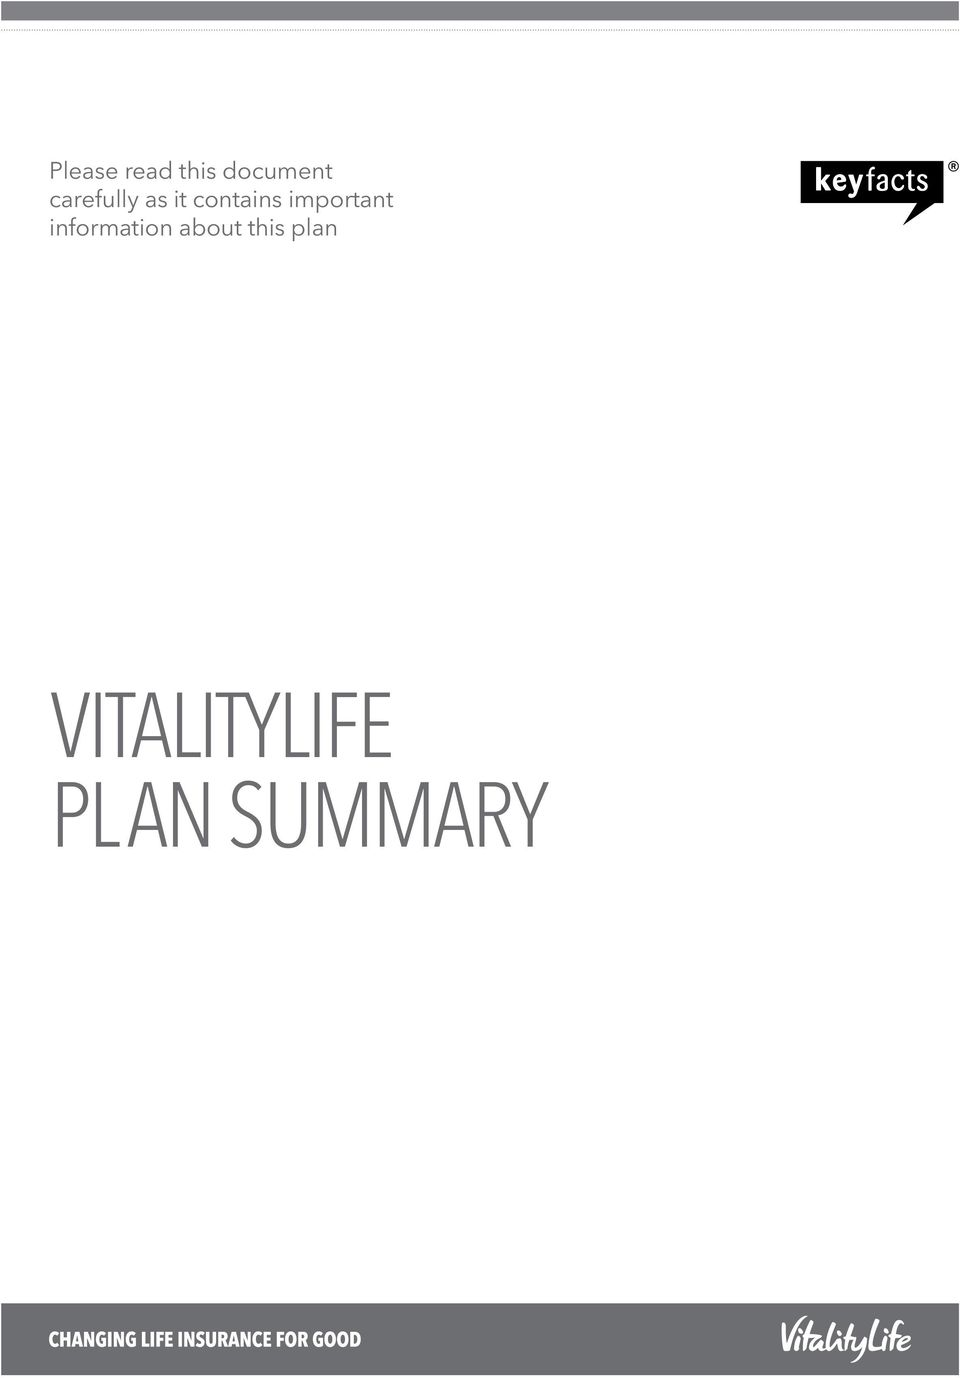 about this plan Your VitalityLife